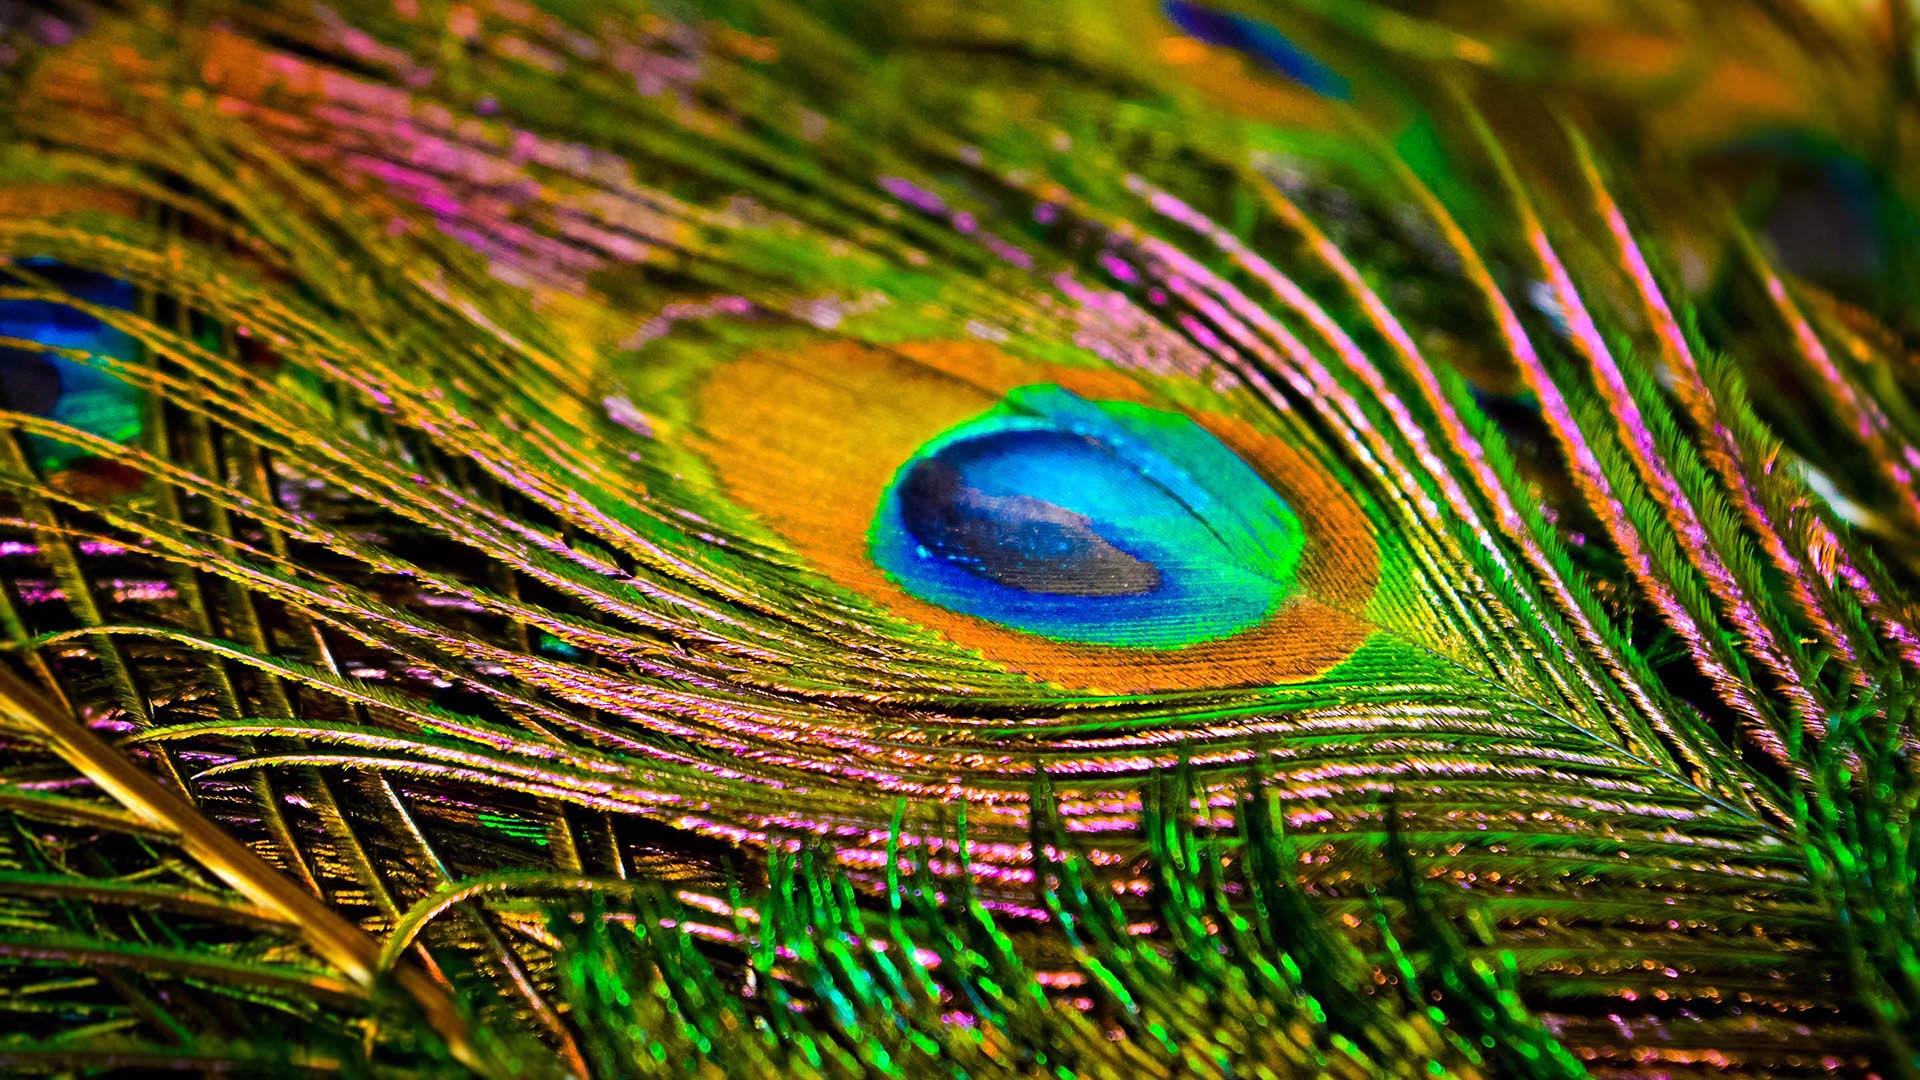 close up of iridescent peacock feathers